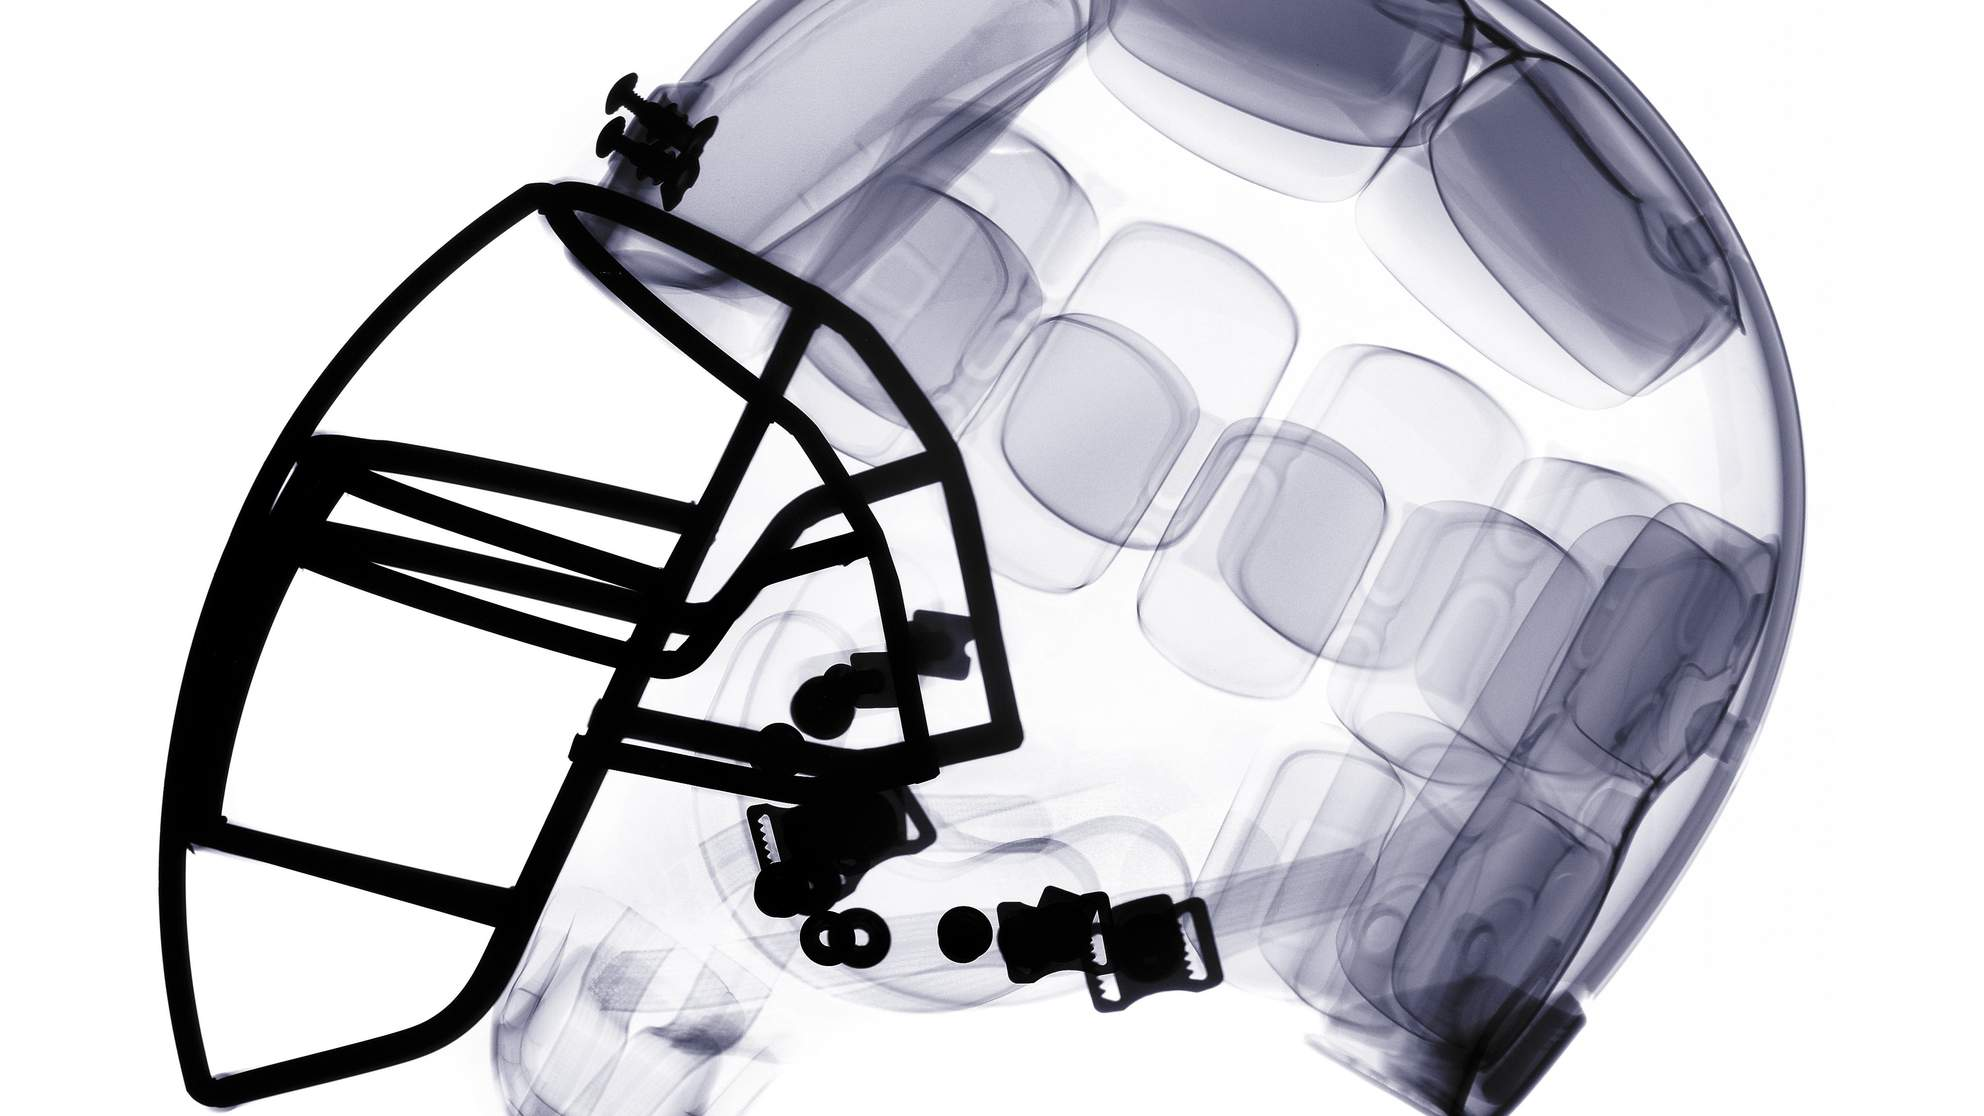 X-ray of american football helmet.